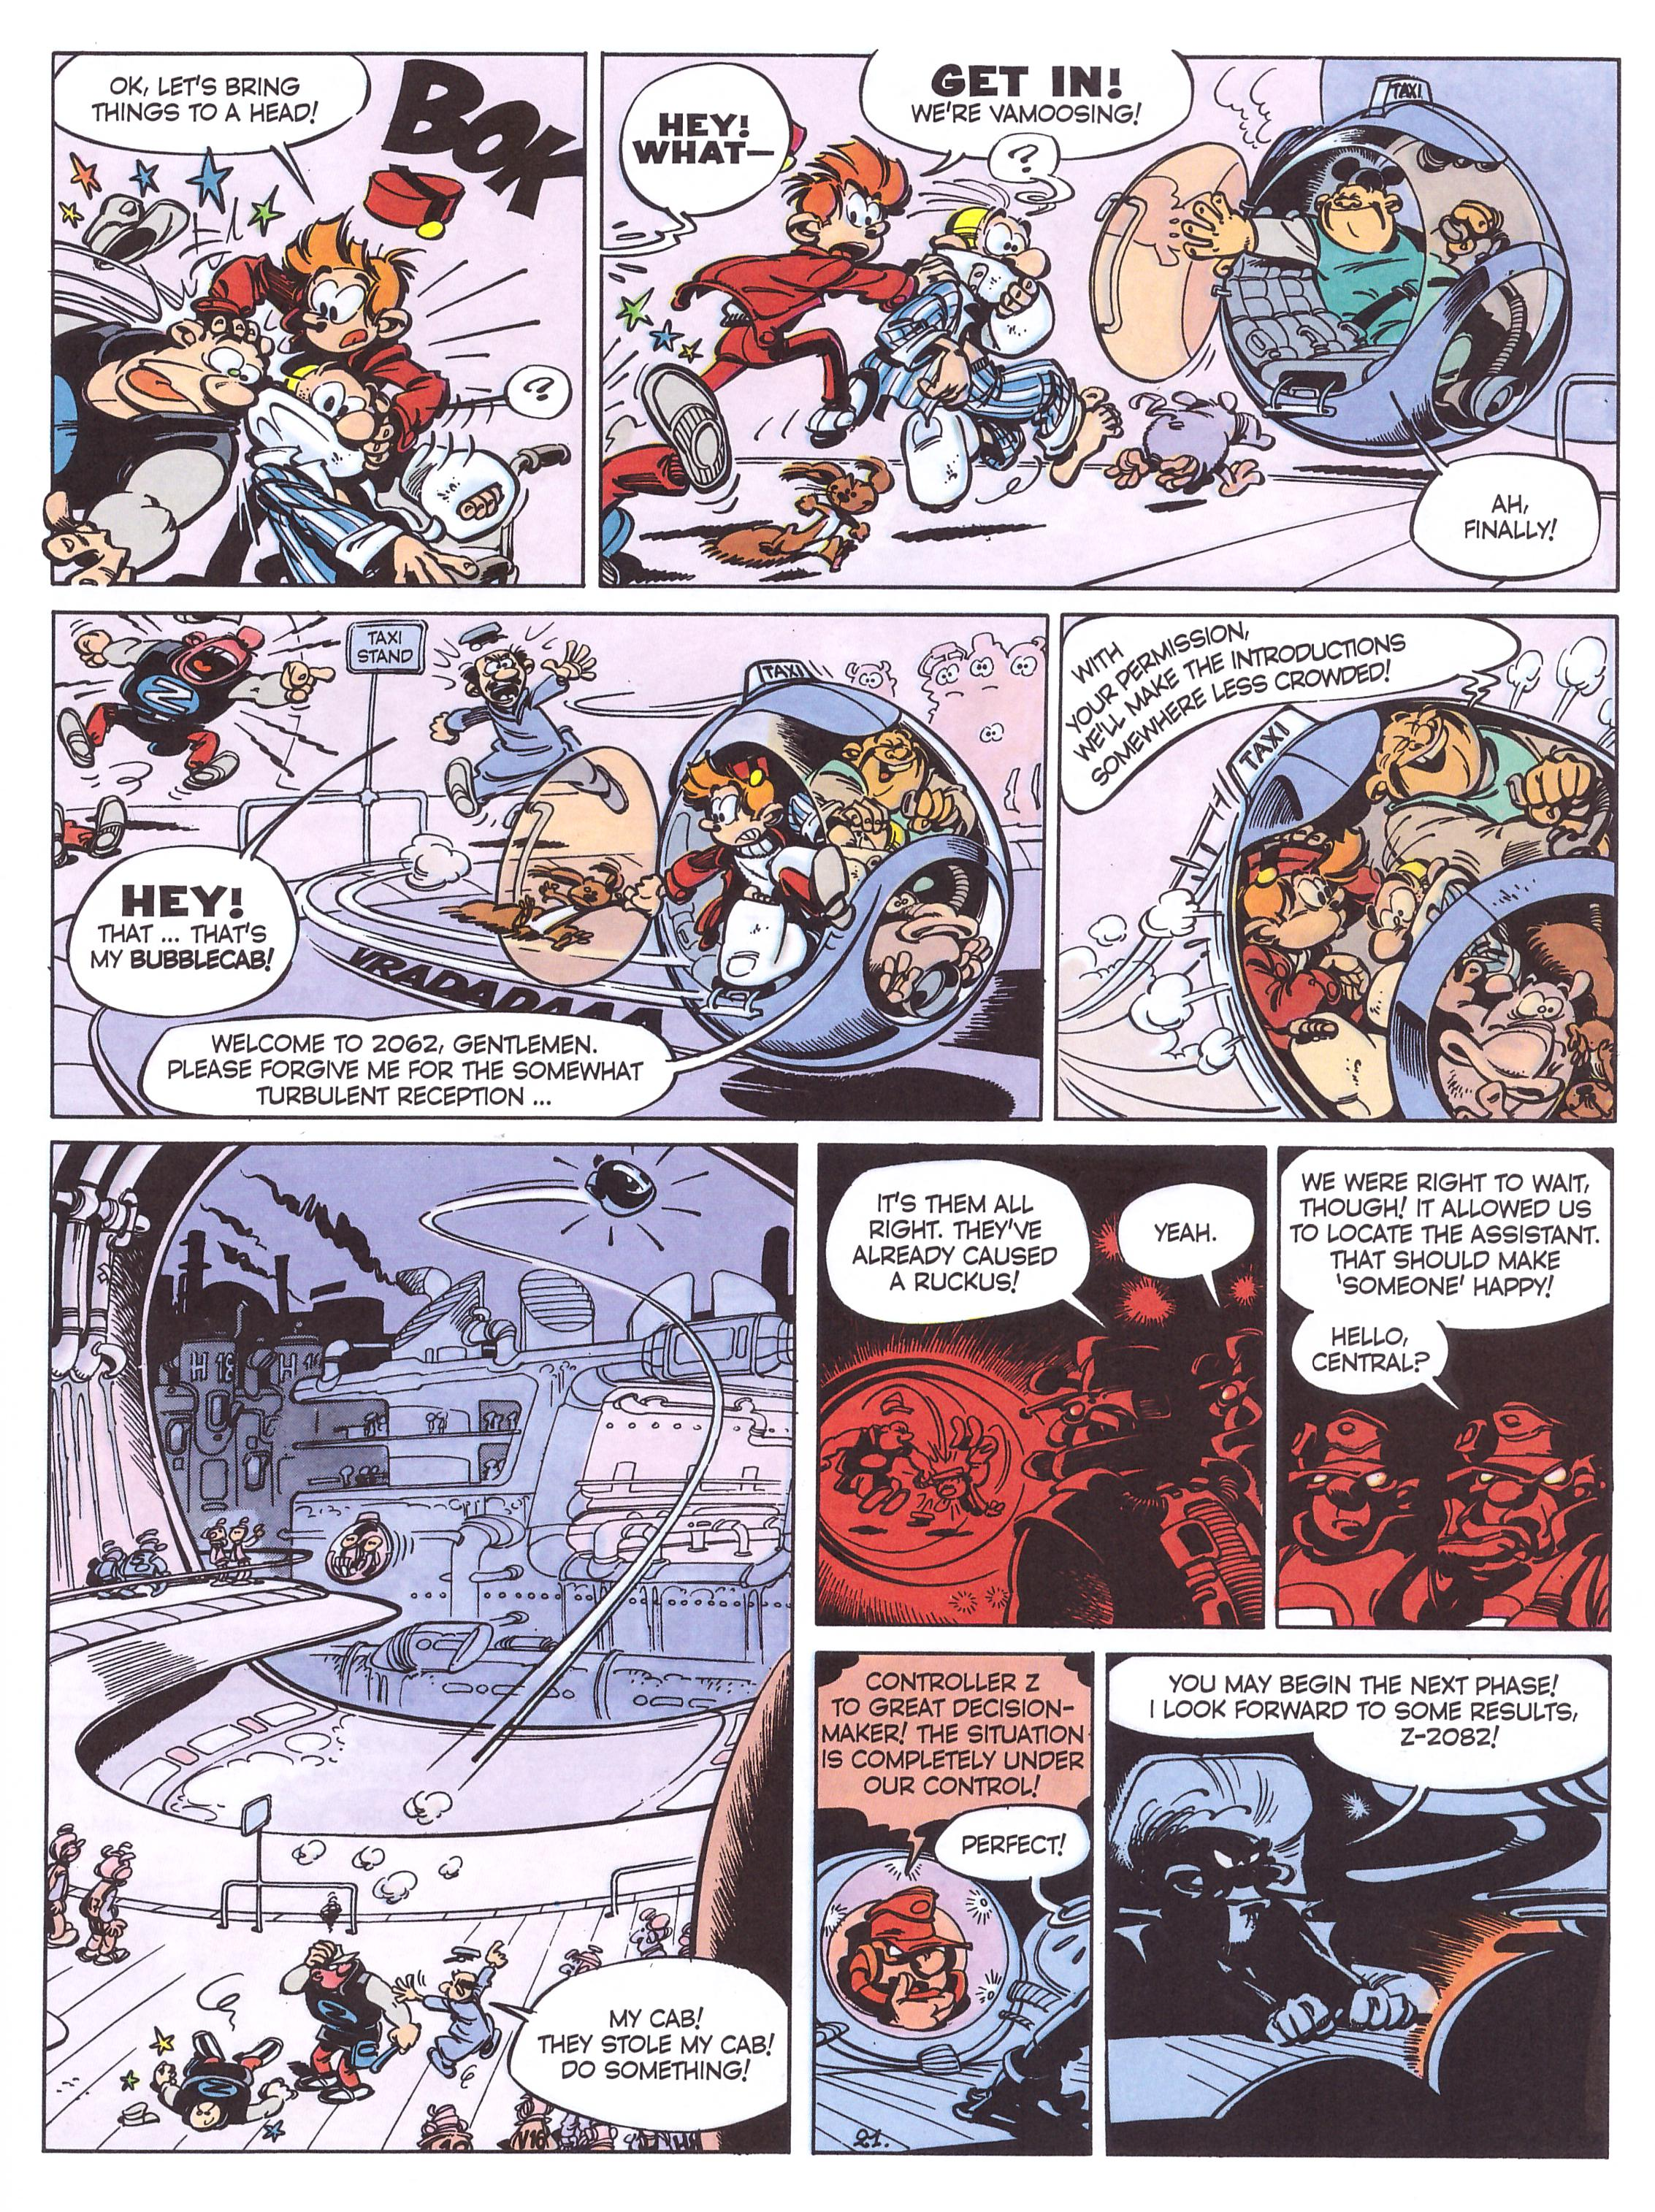 Spirou and Fantasio The Z Rises Again review